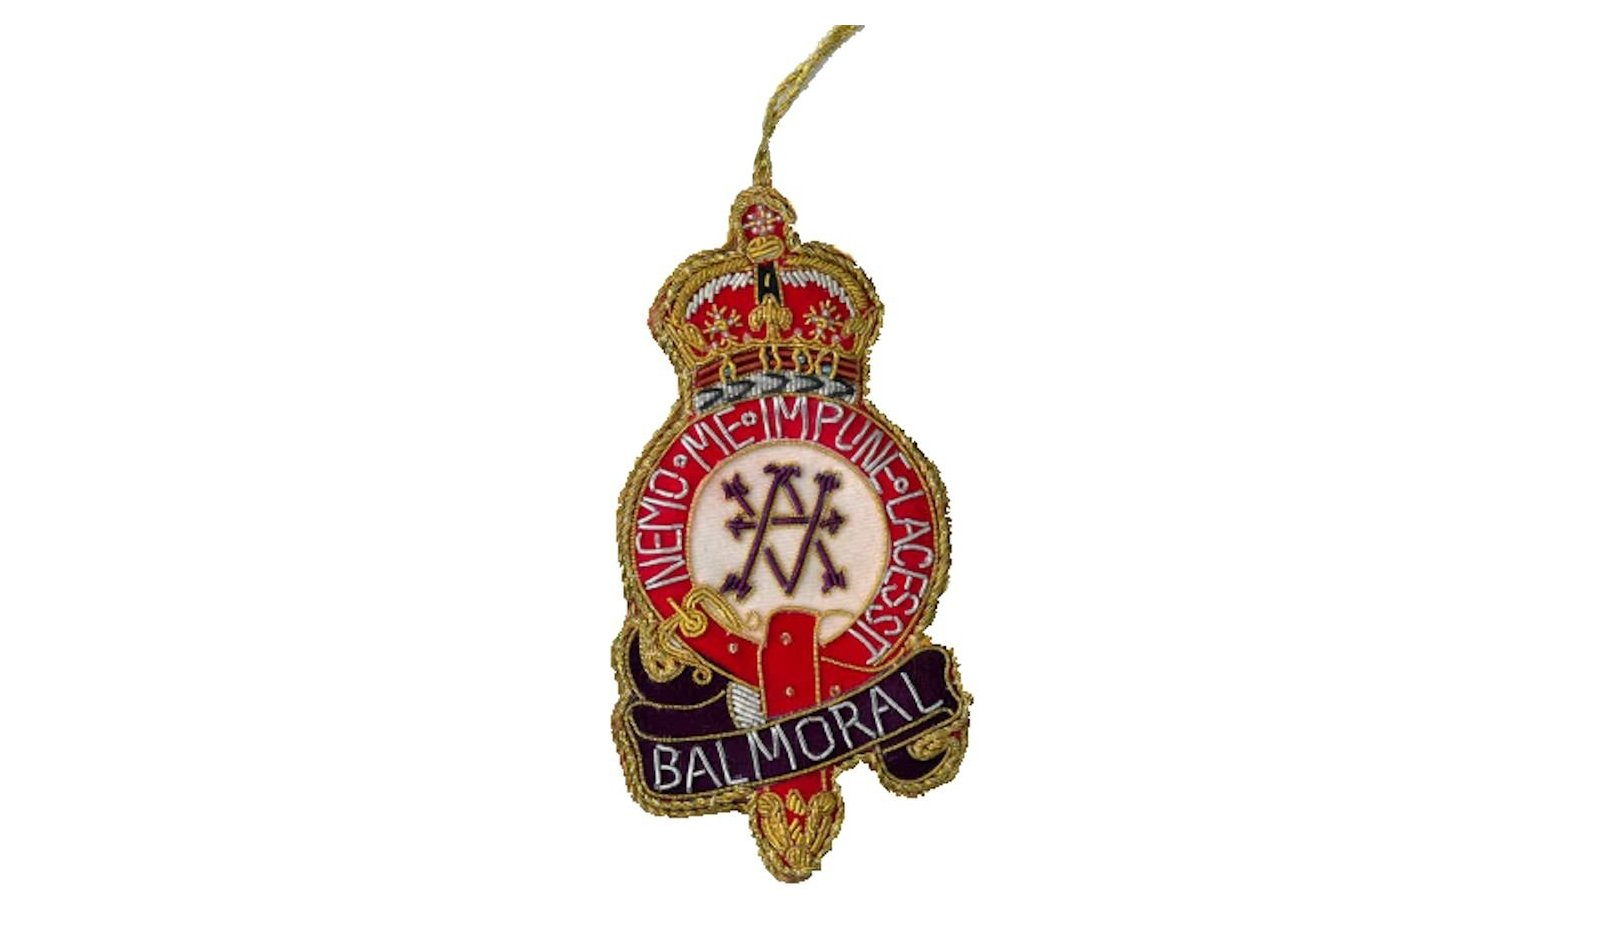 Balmoral Crest Decoration